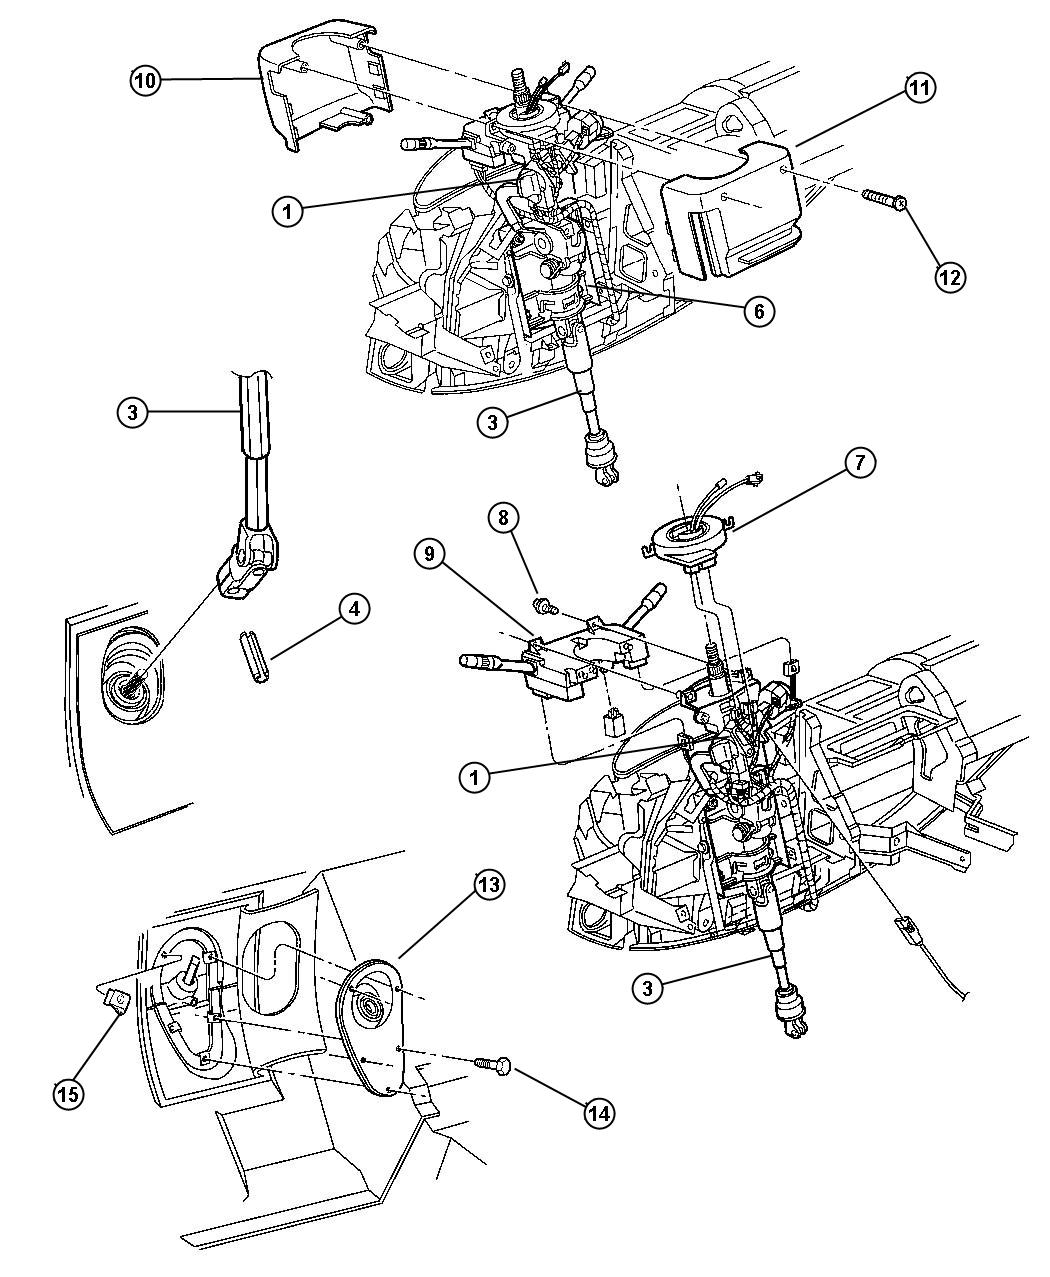 Service Manual Plymouth Breeze Tilt Steering Column